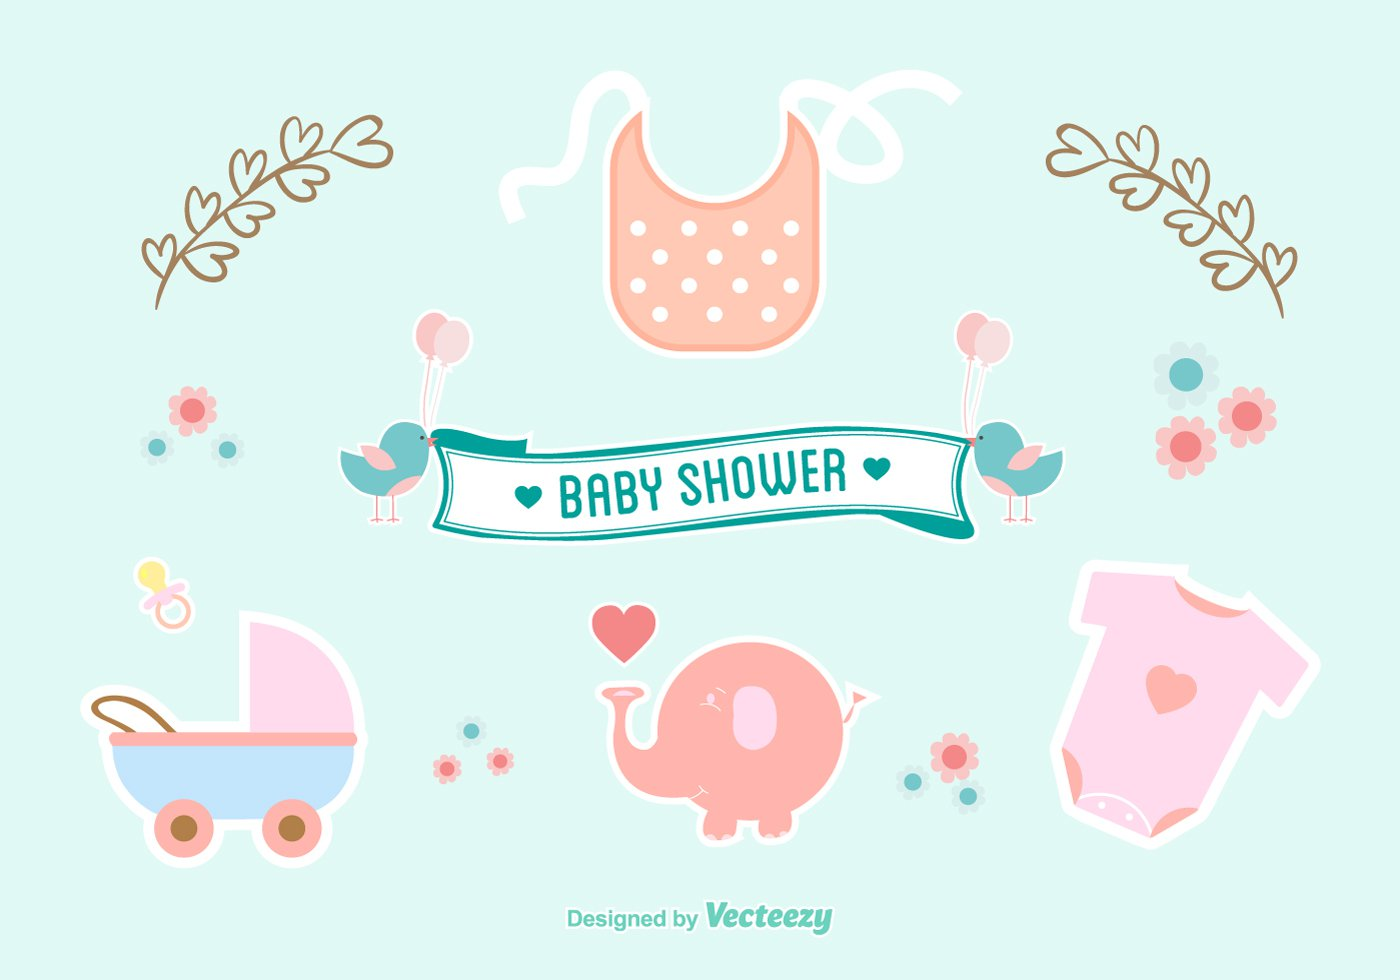 Smart Girl Wallpaper Free Download Download Baby Shower Wallpaper Free Gallery